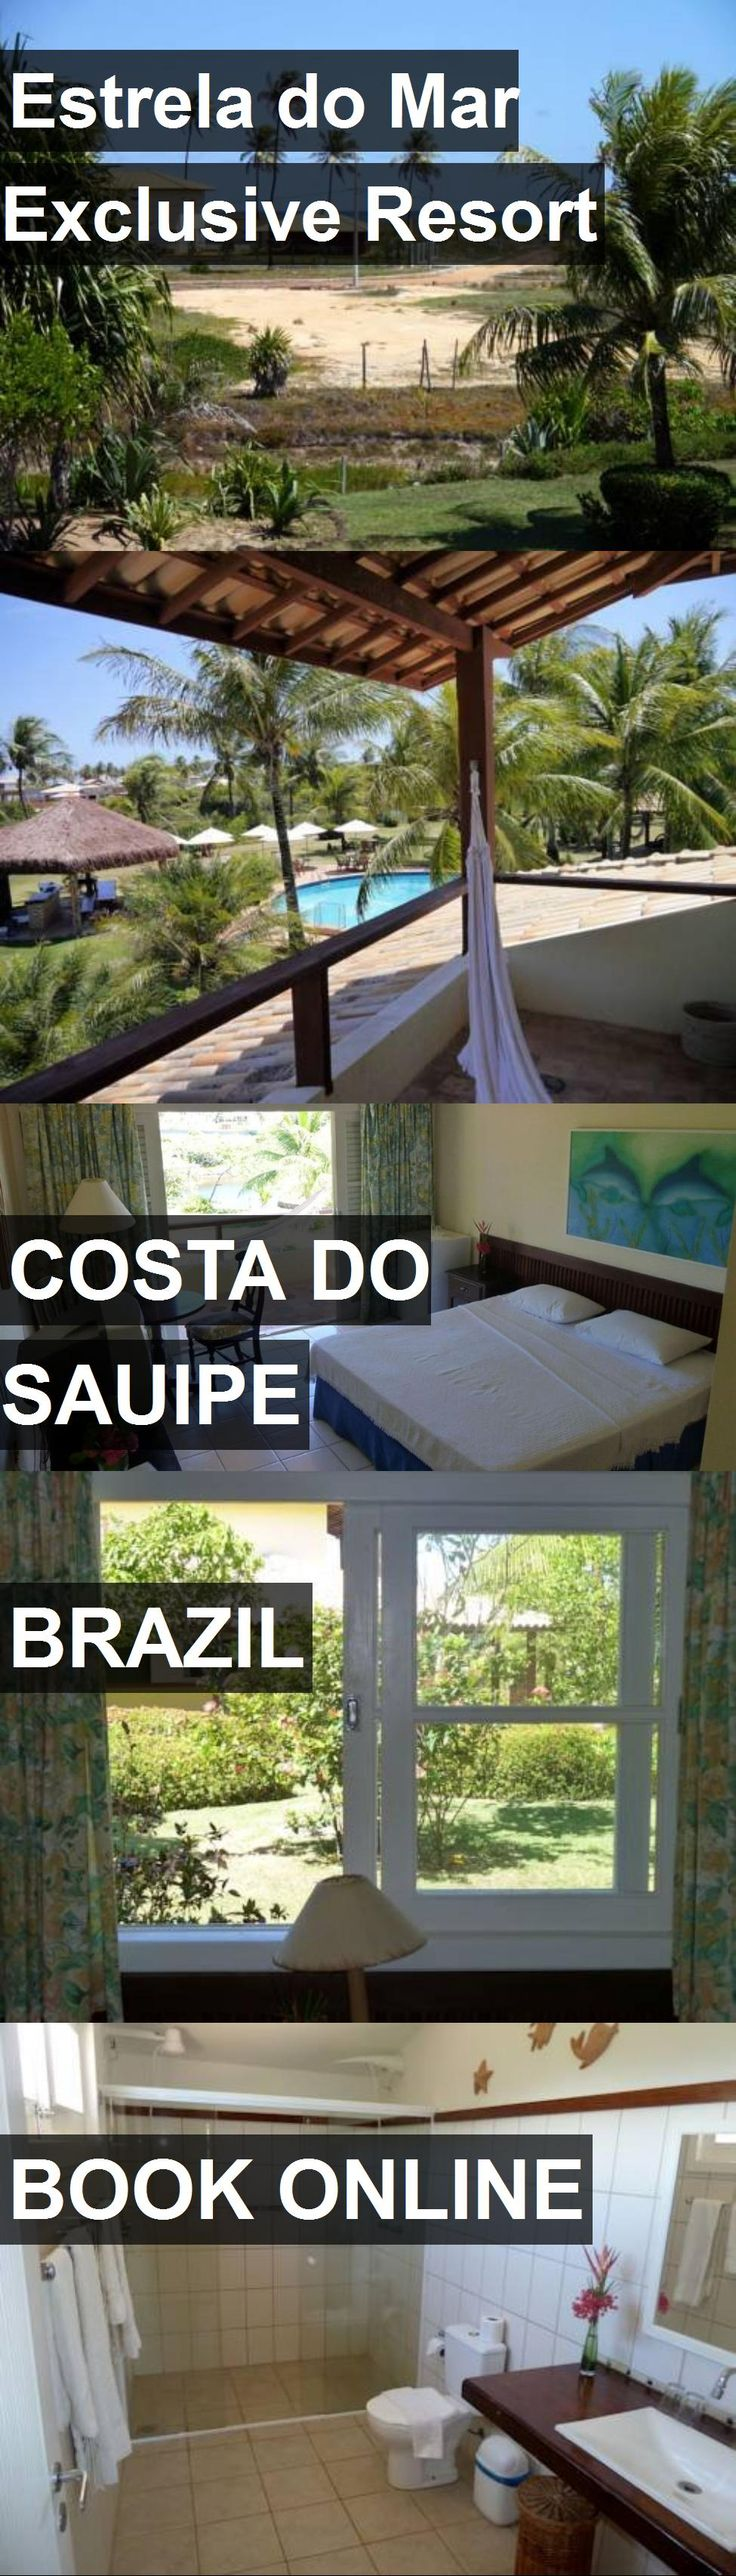 Hotel Estrela do Mar Exclusive Resort in Costa do Sauipe, Brazil. For more information, photos, reviews and best prices please follow the link. #Brazil #CostadoSauipe #travel #vacation #hotel